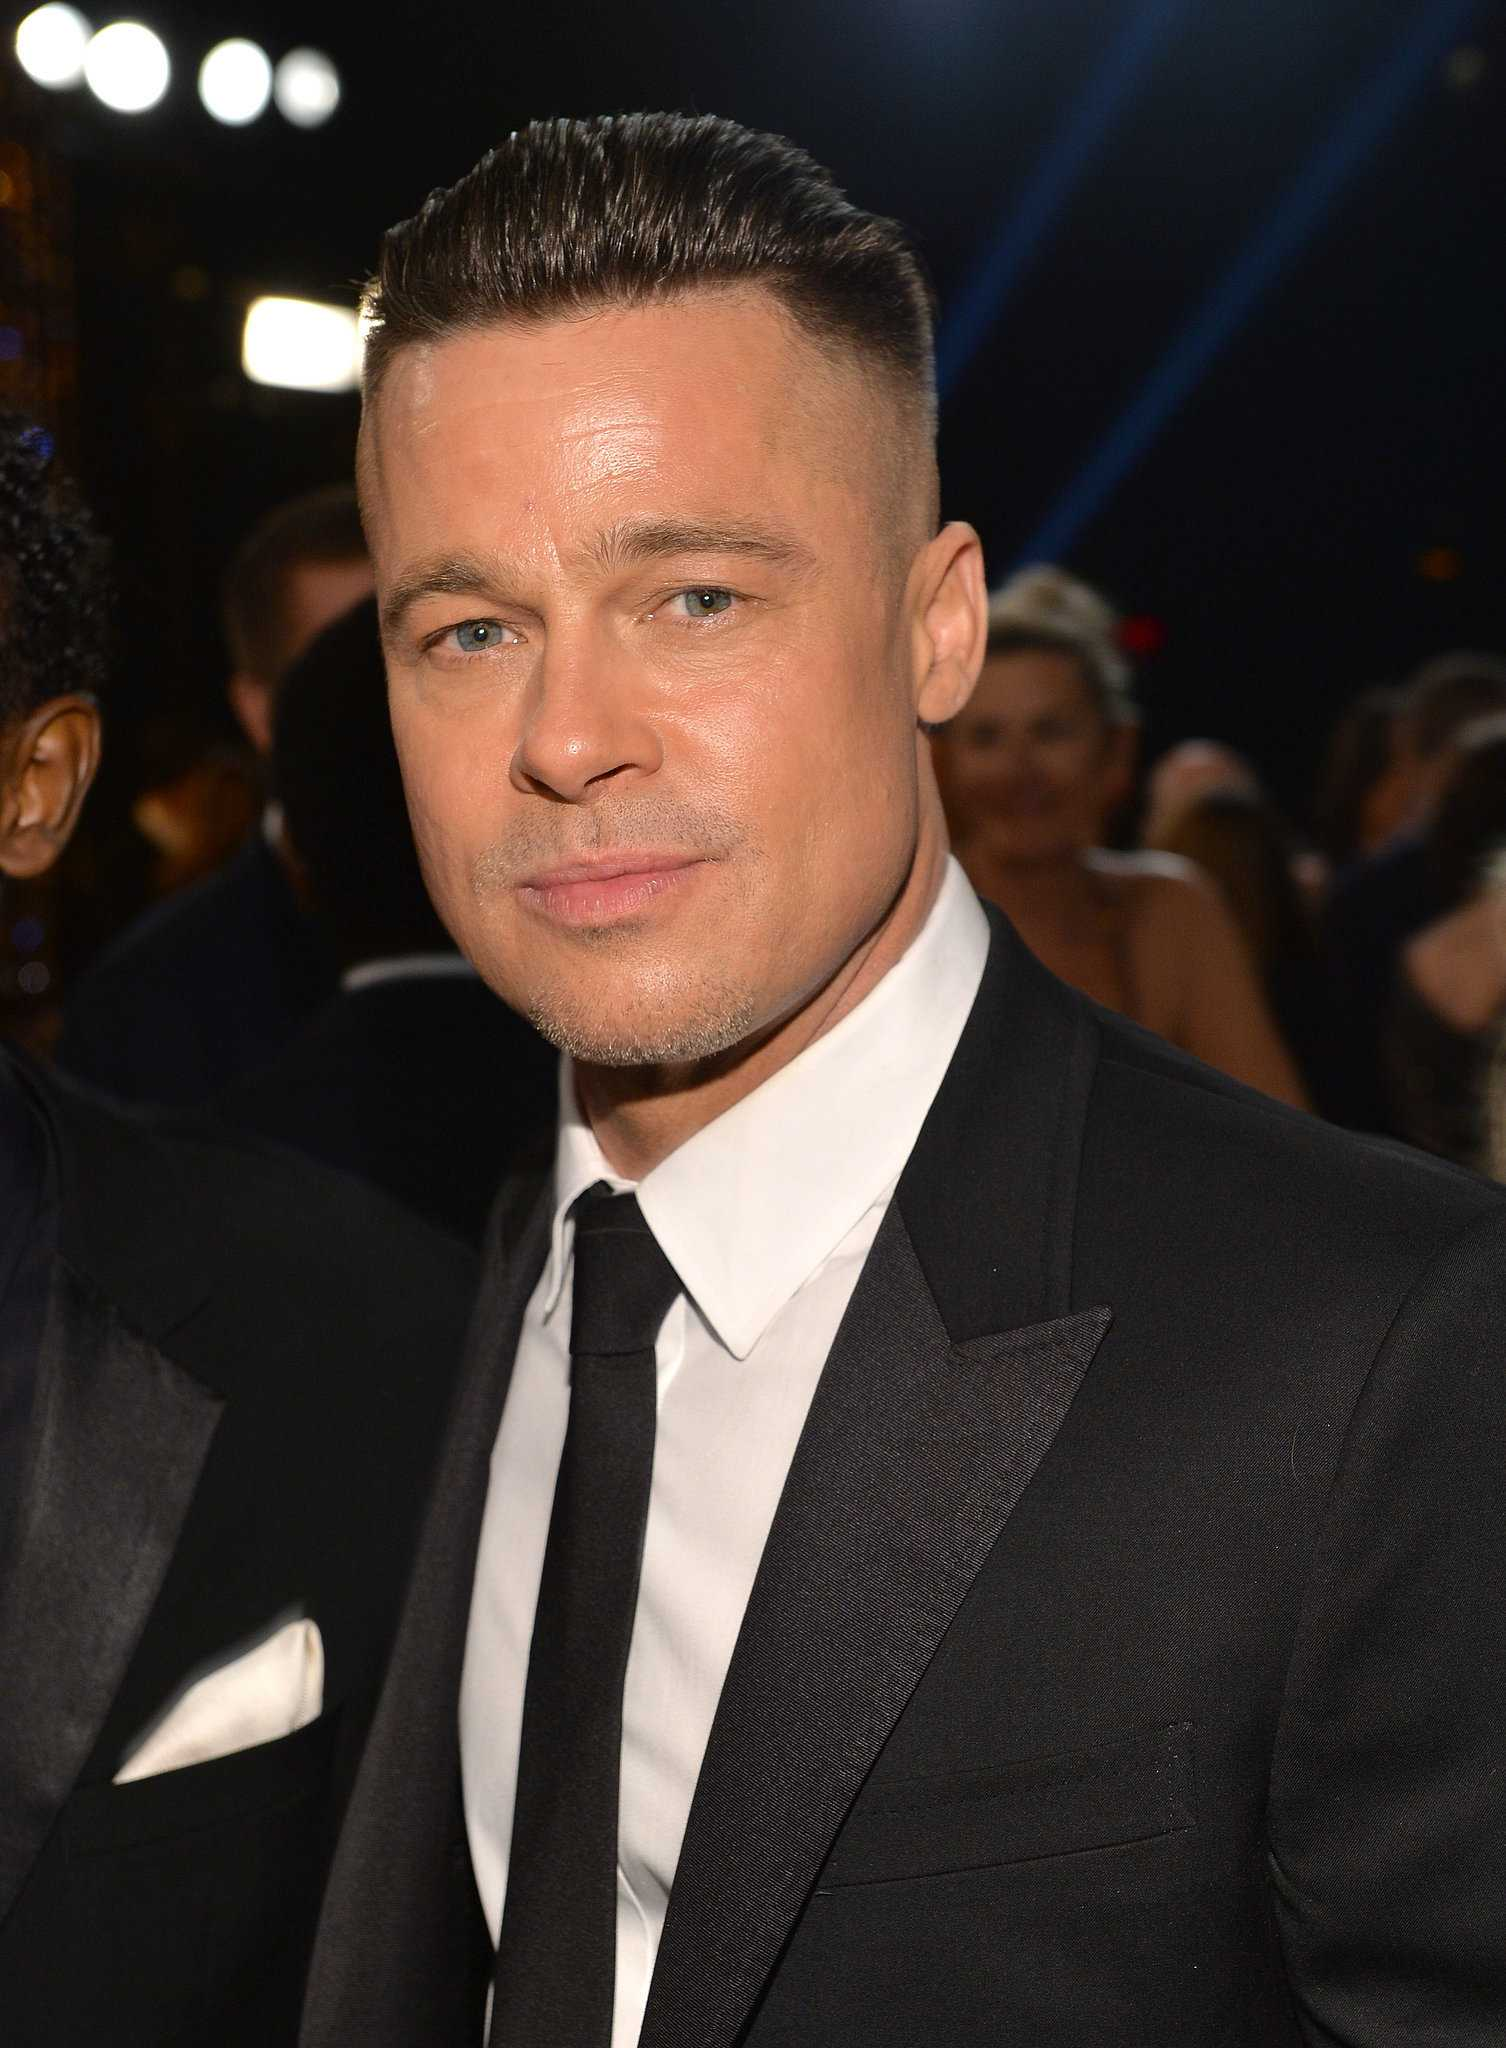 Brad Pitt Working To Provide Housing For Homeless Native Americans